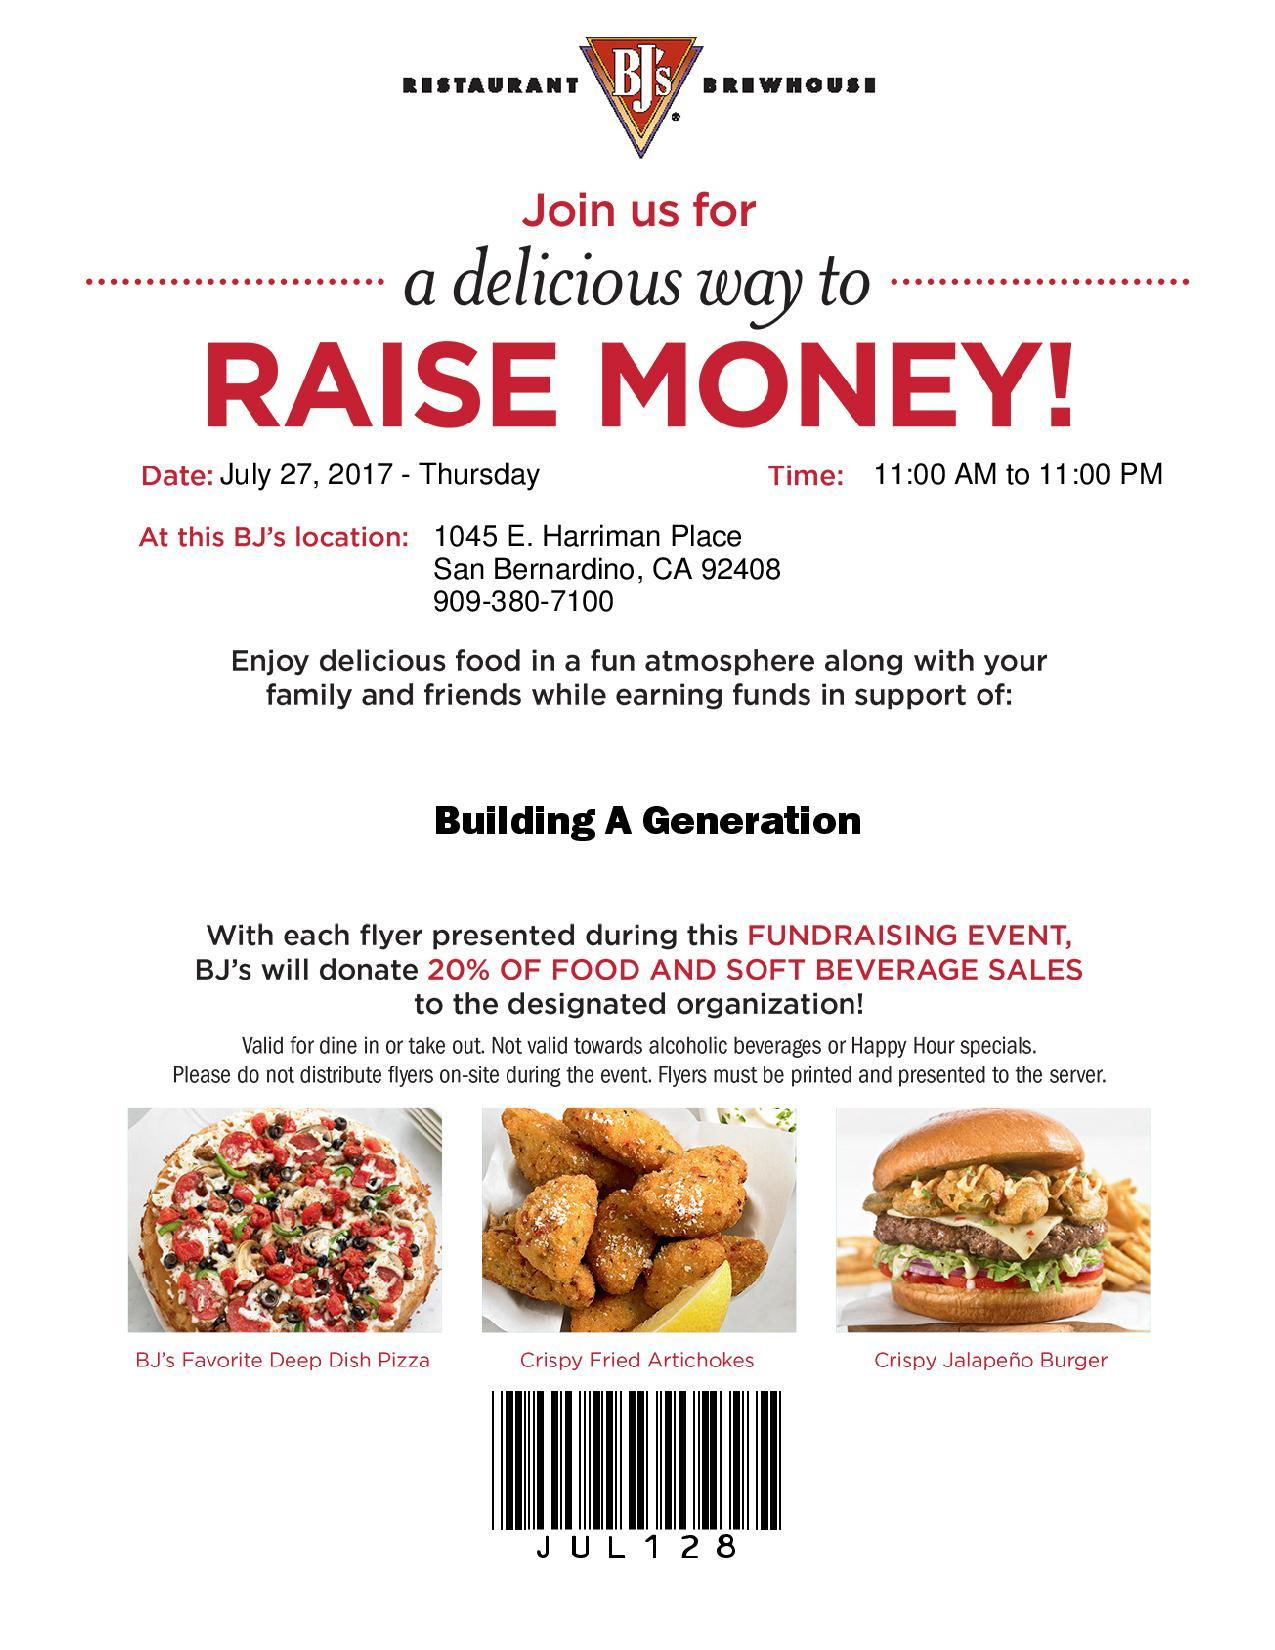 Join us at BJ's and help raise money!